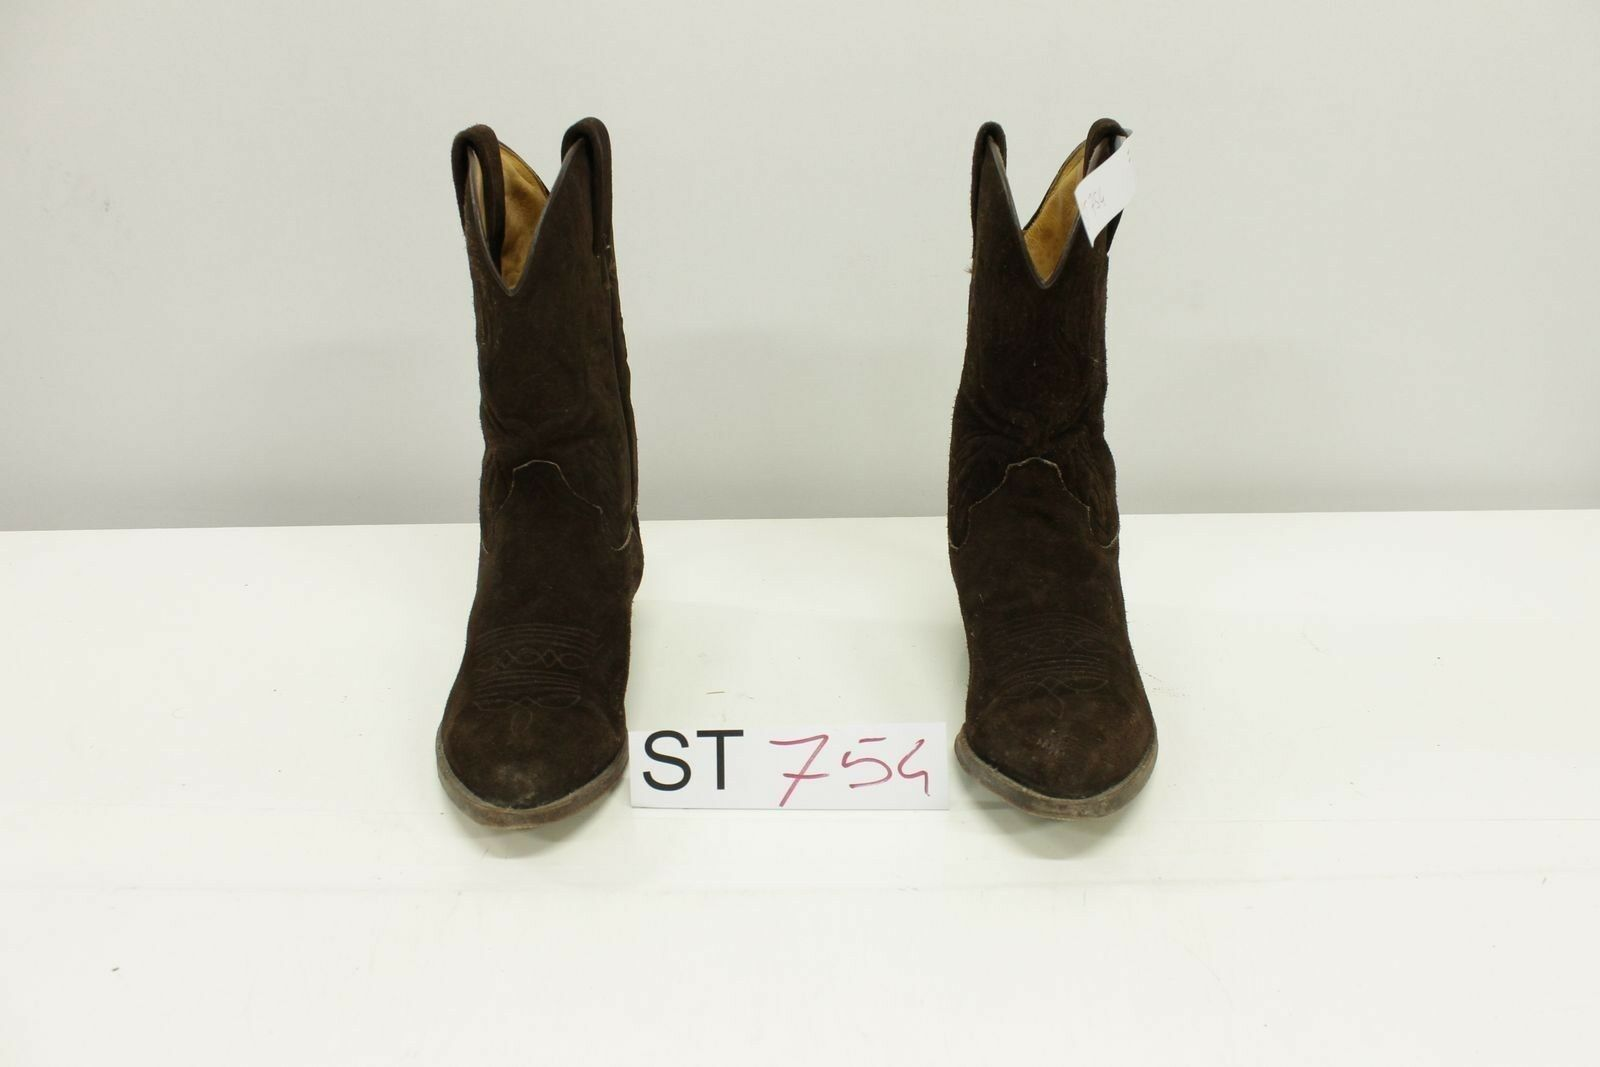 Stivali Tony Mora boots (Cod.ST754) cowboys camperos bikers  western usato donna